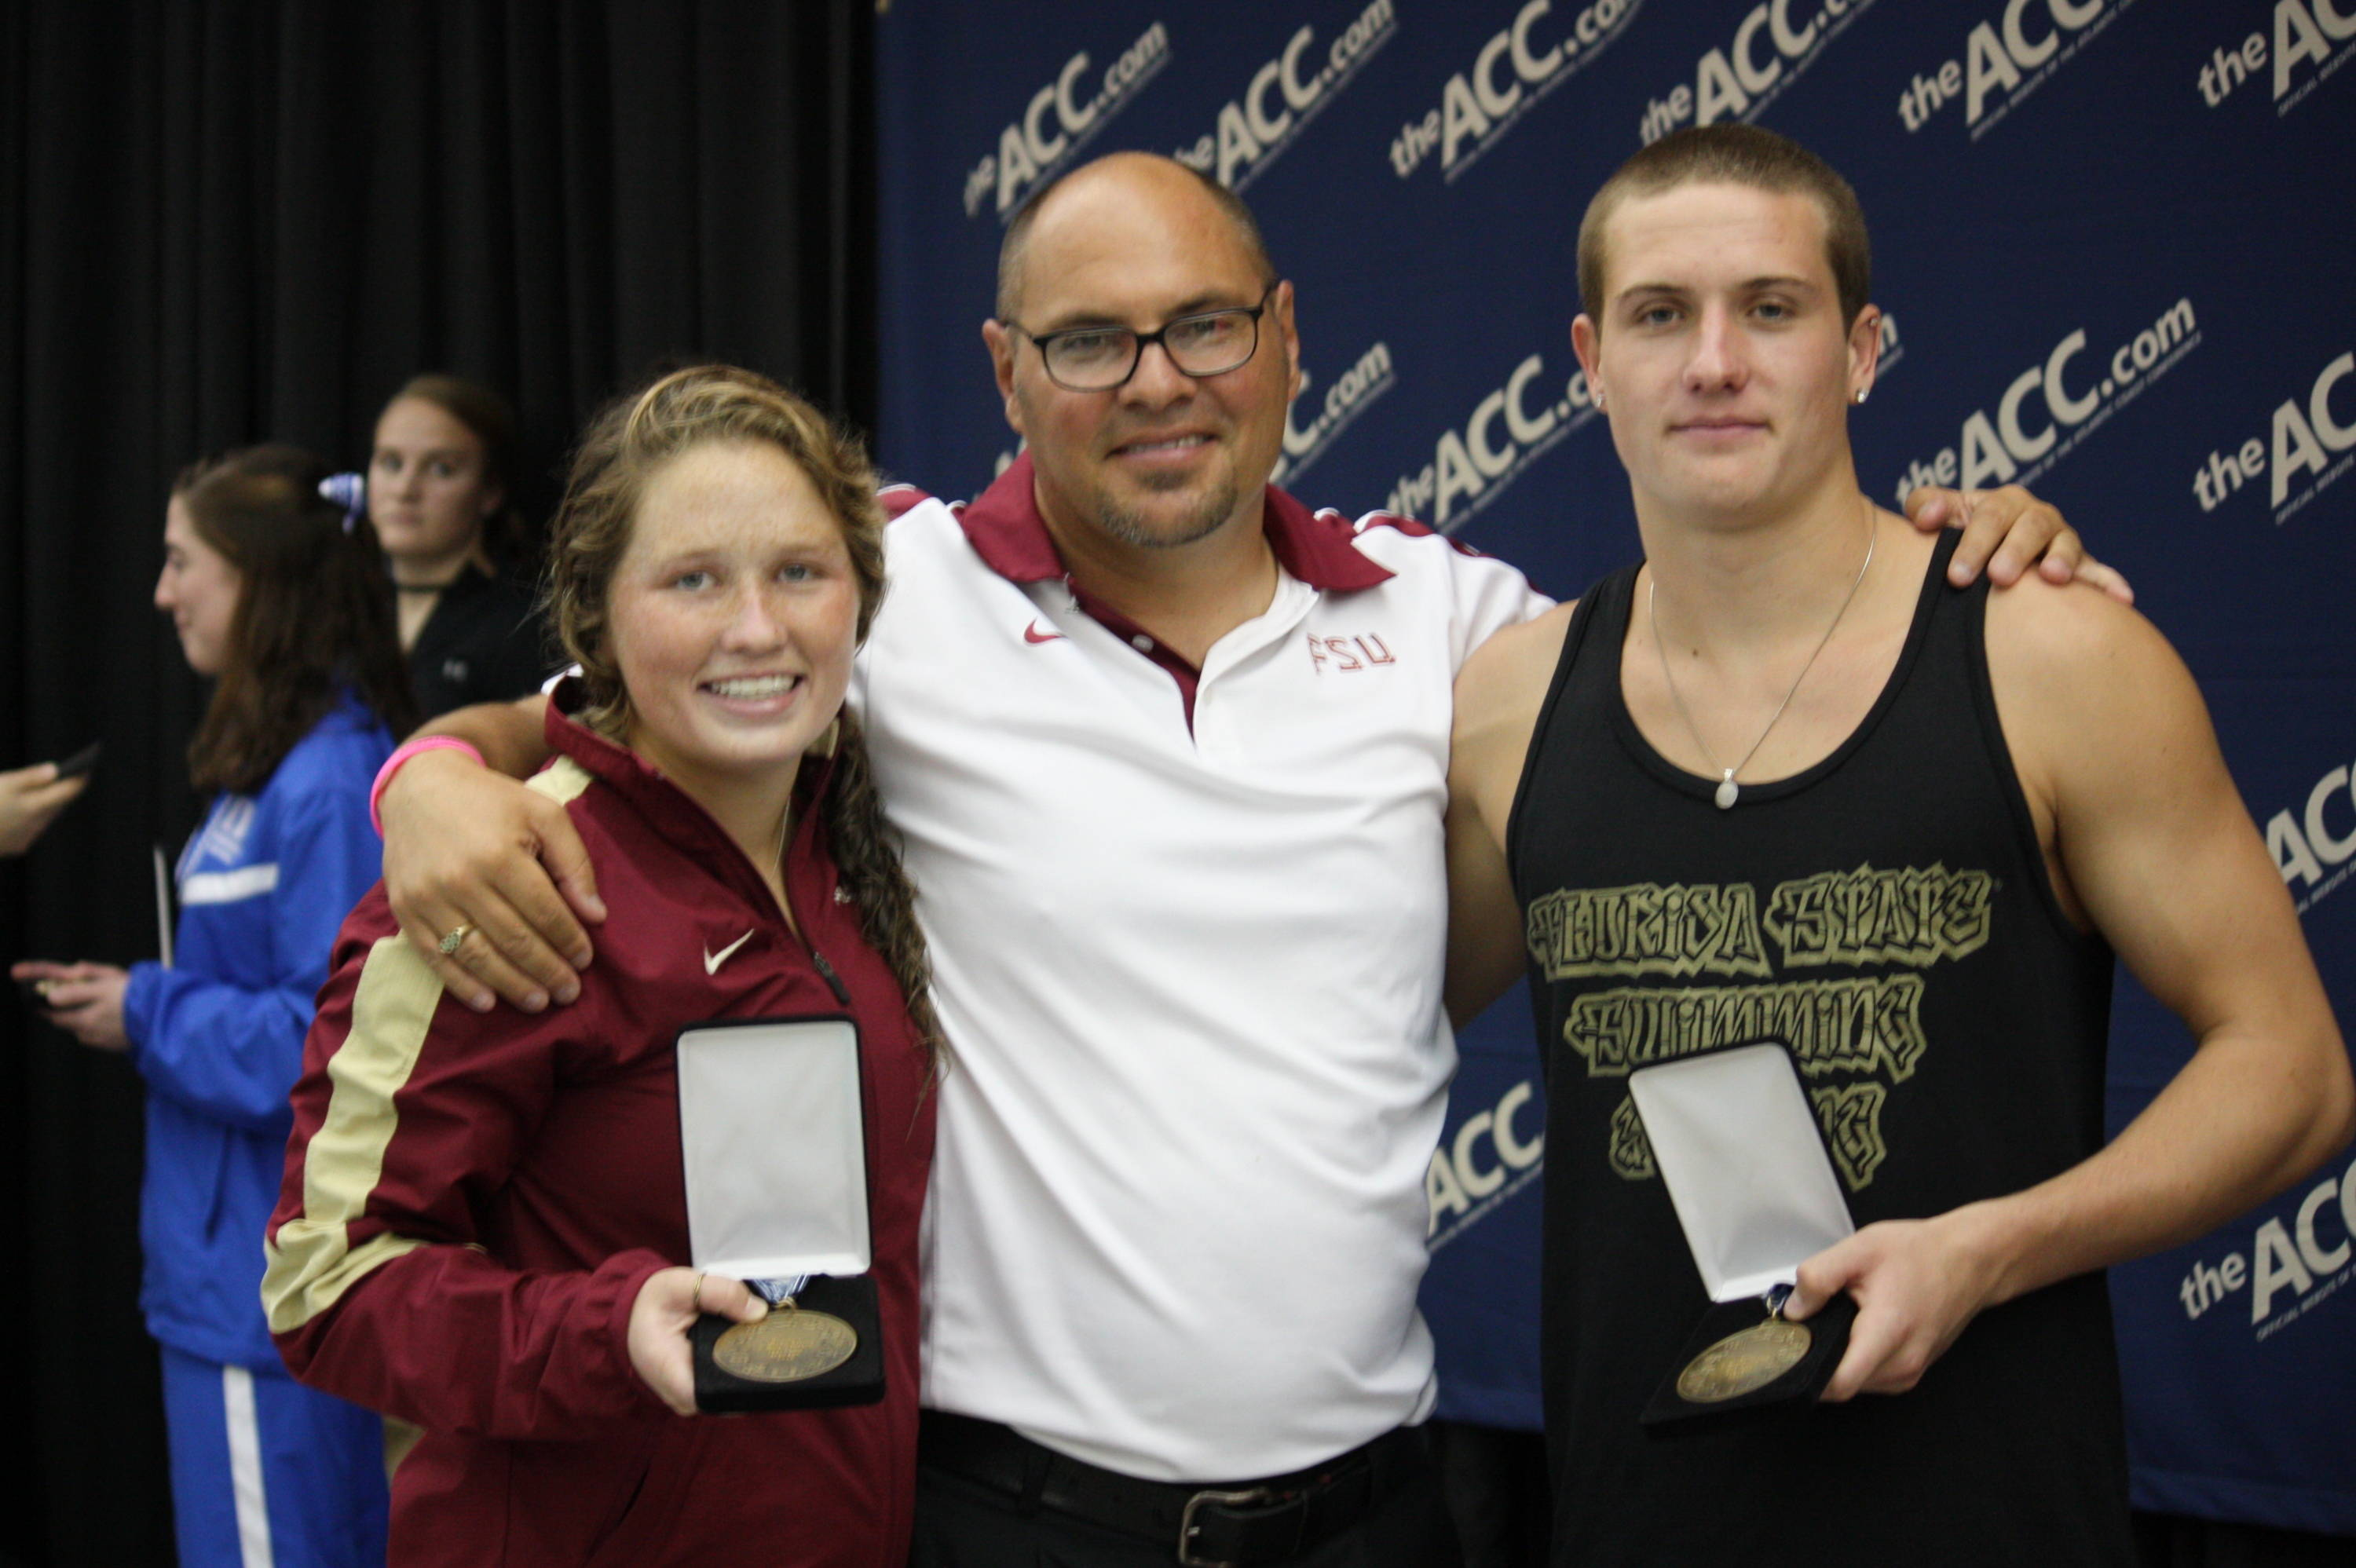 Head Coach Pat Jeffrey smiles with his bronze medalists, Kelsey Goodman and Tom Neubacher.